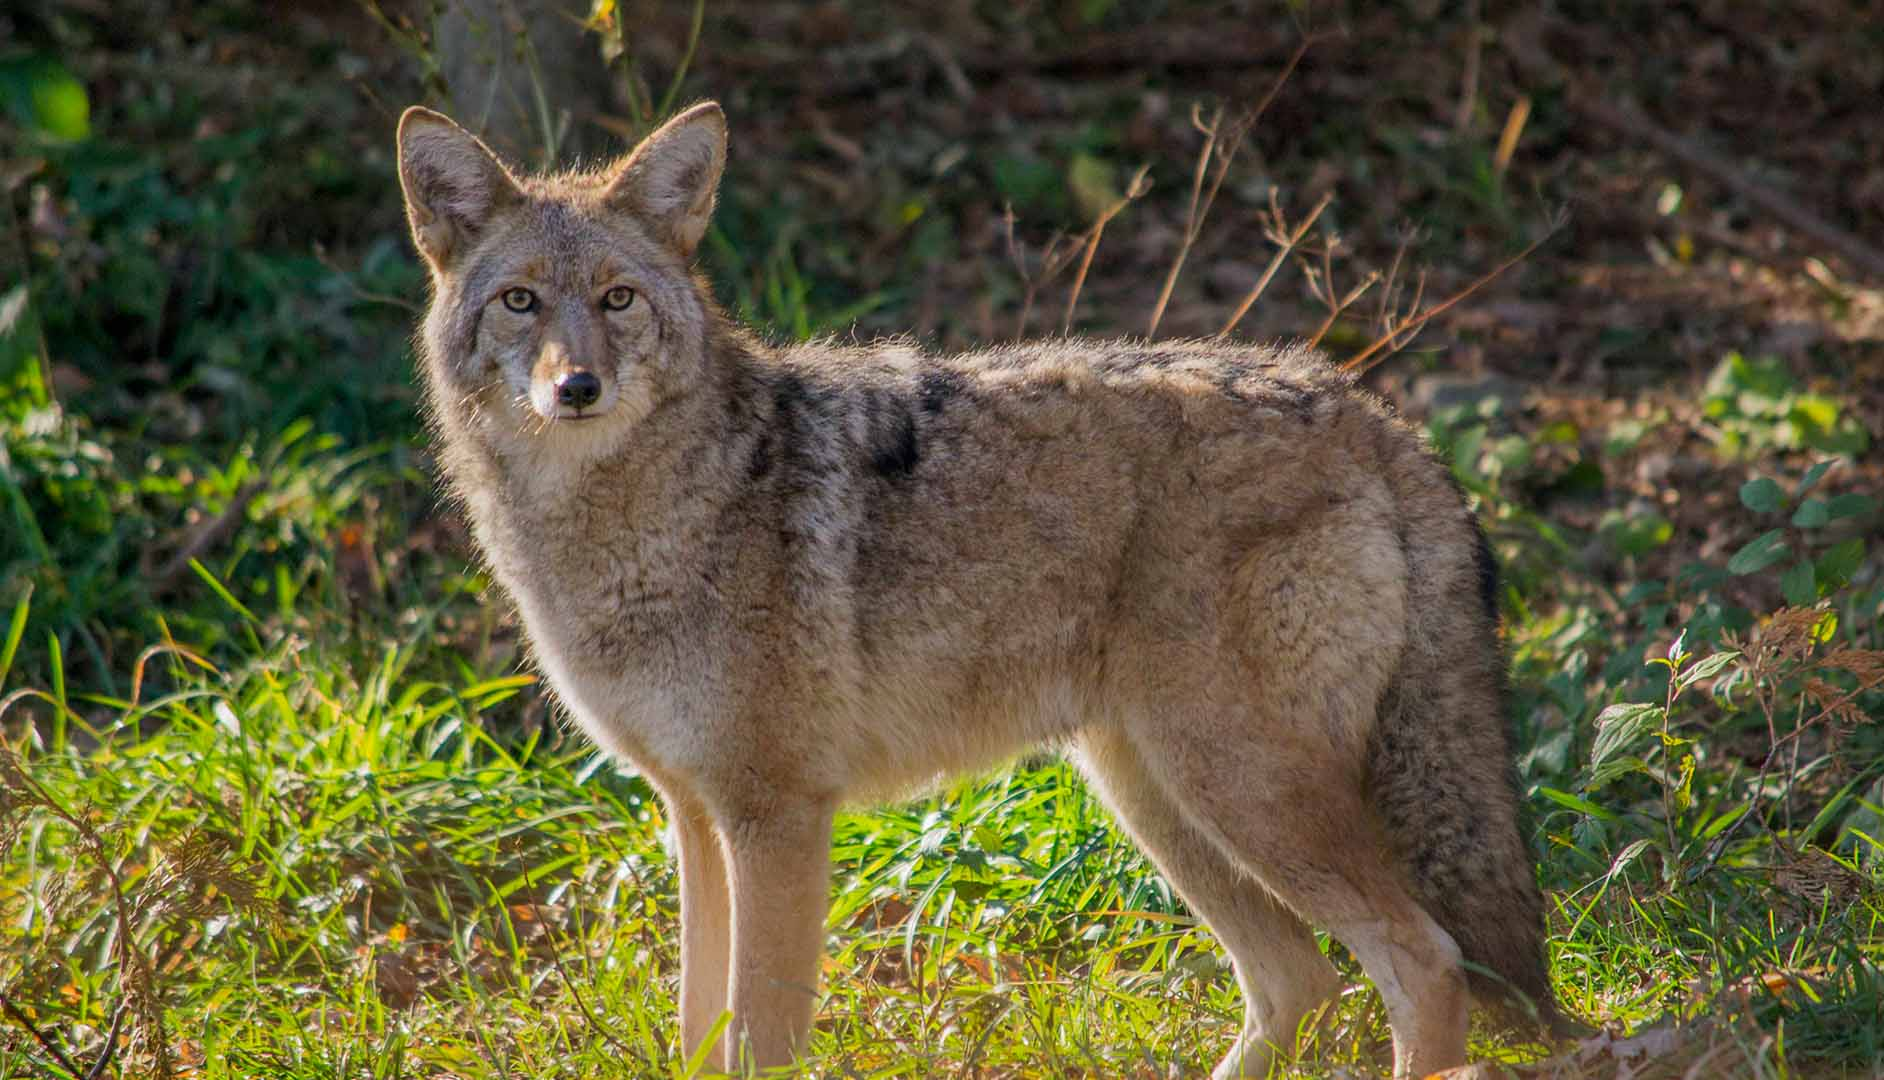 Coyote - appearance